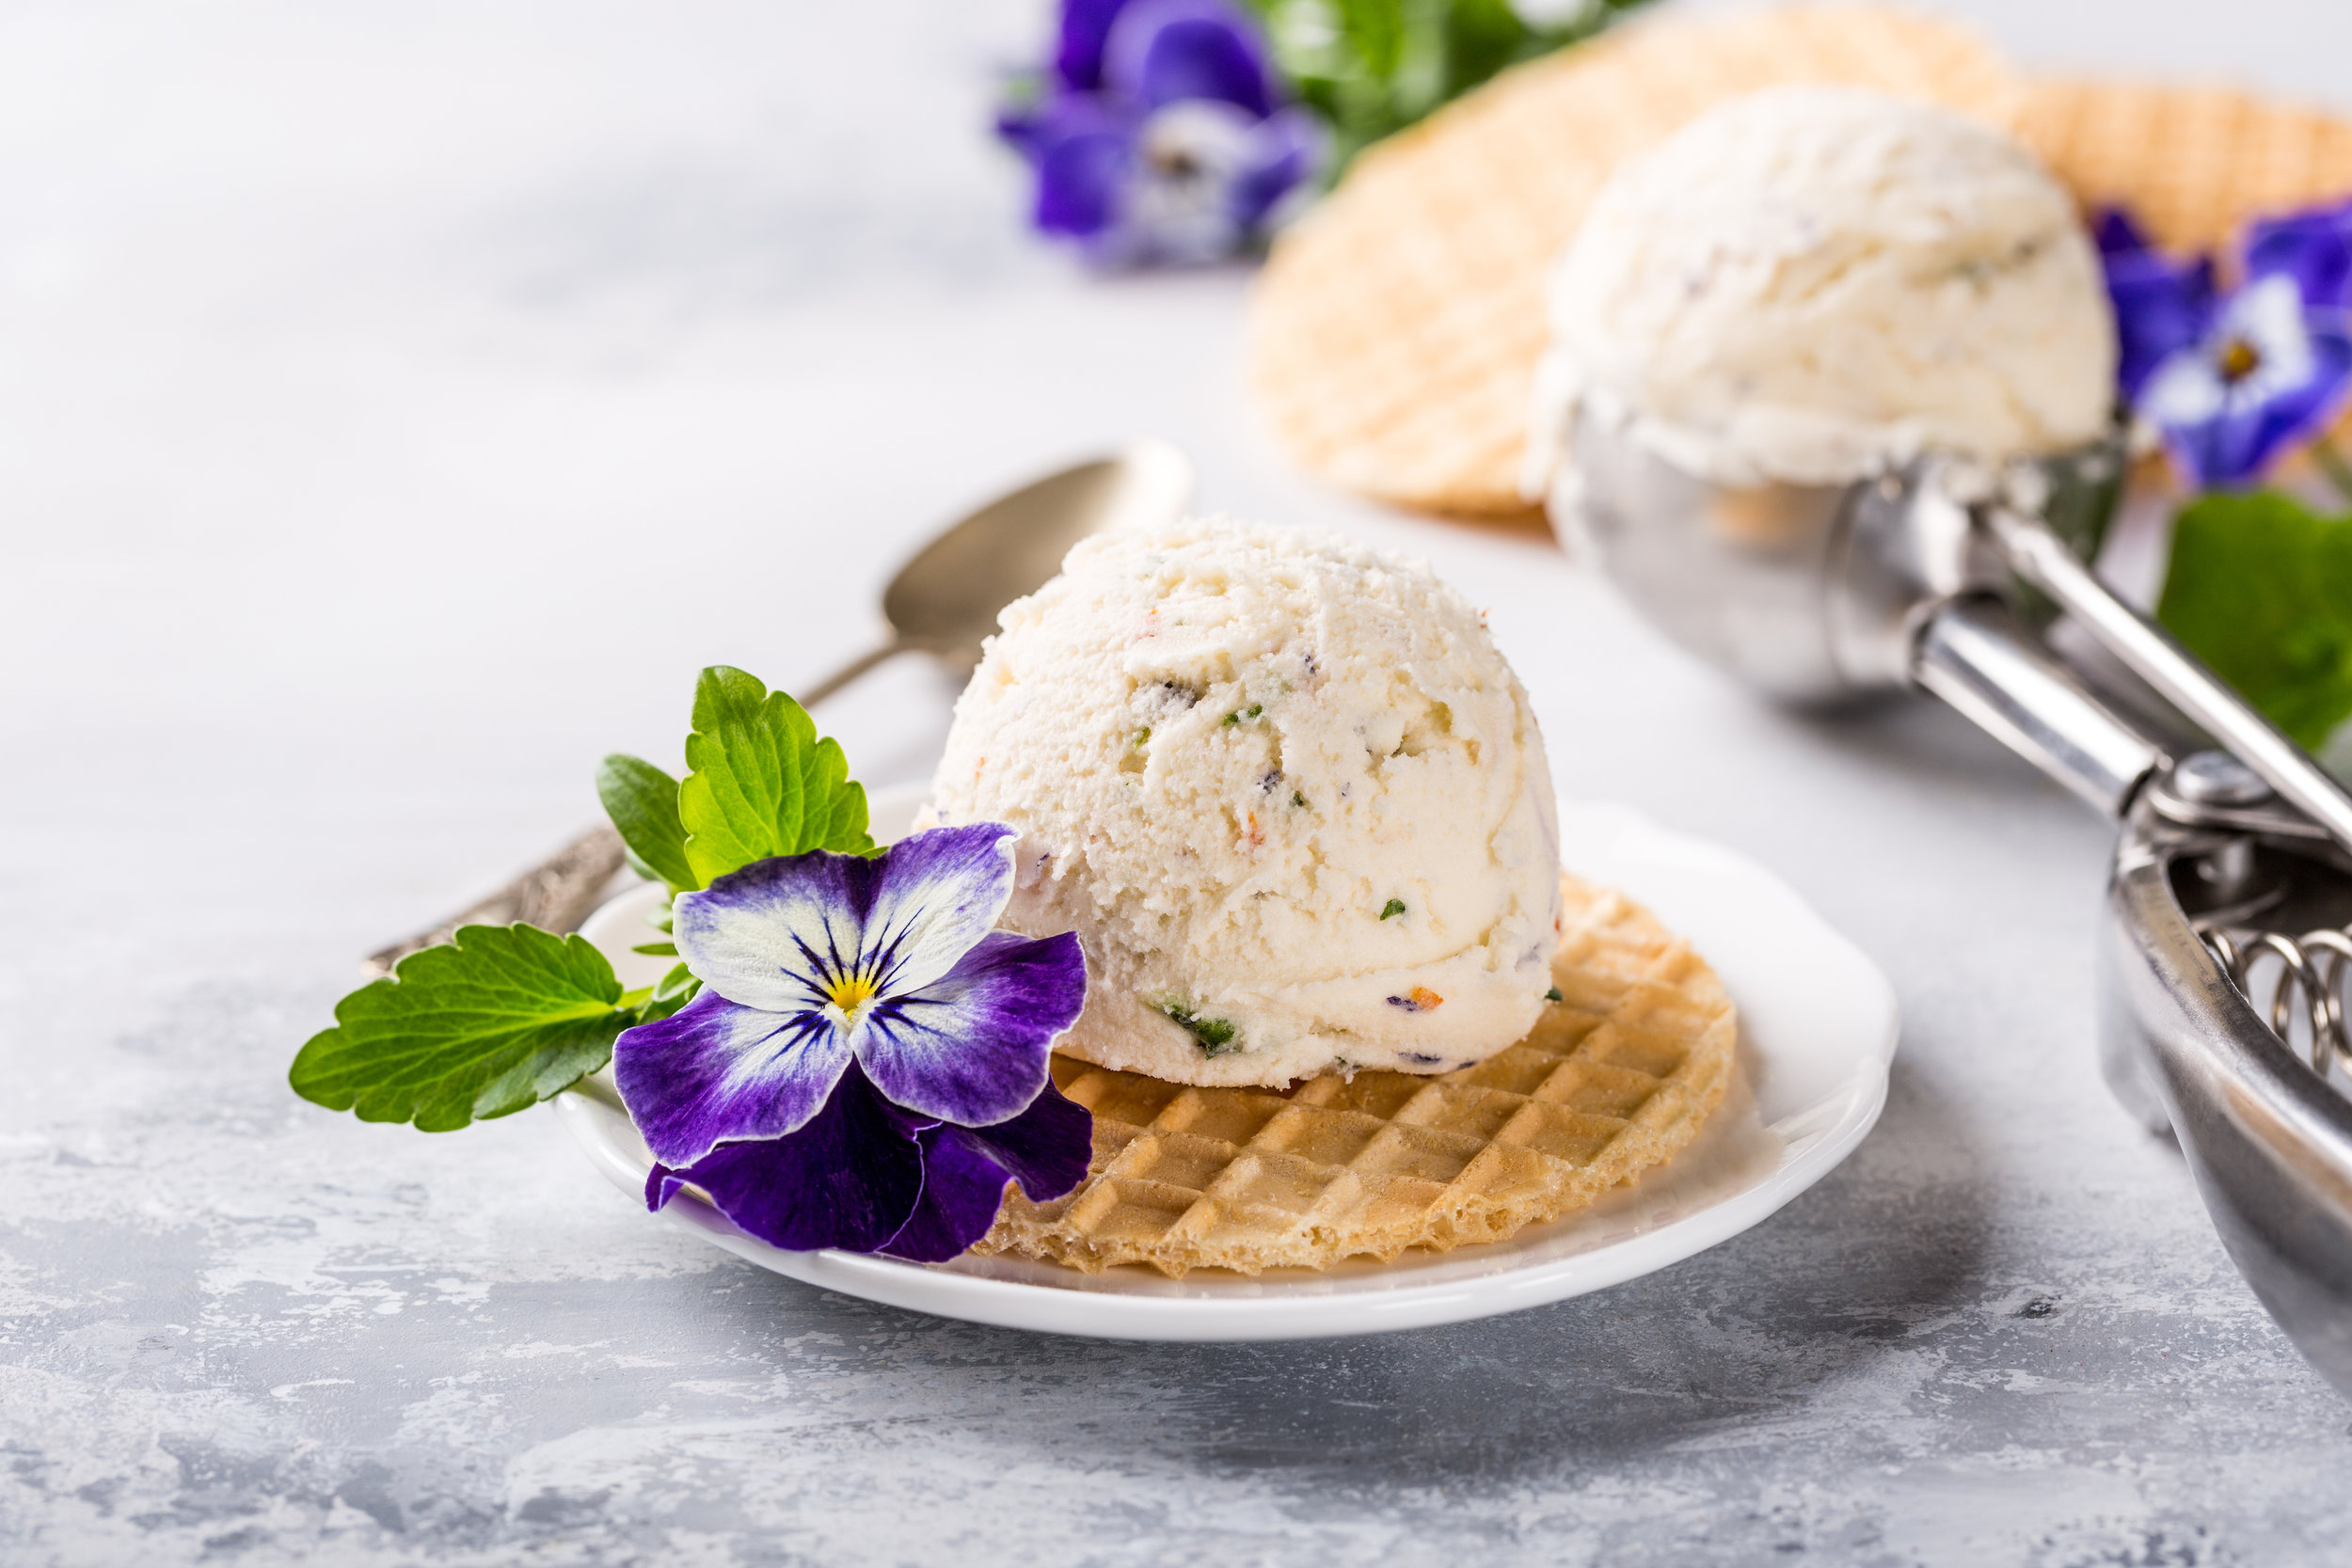 vanilla-ice-cream-with-edible-flowers-3VT2H8L.jpg